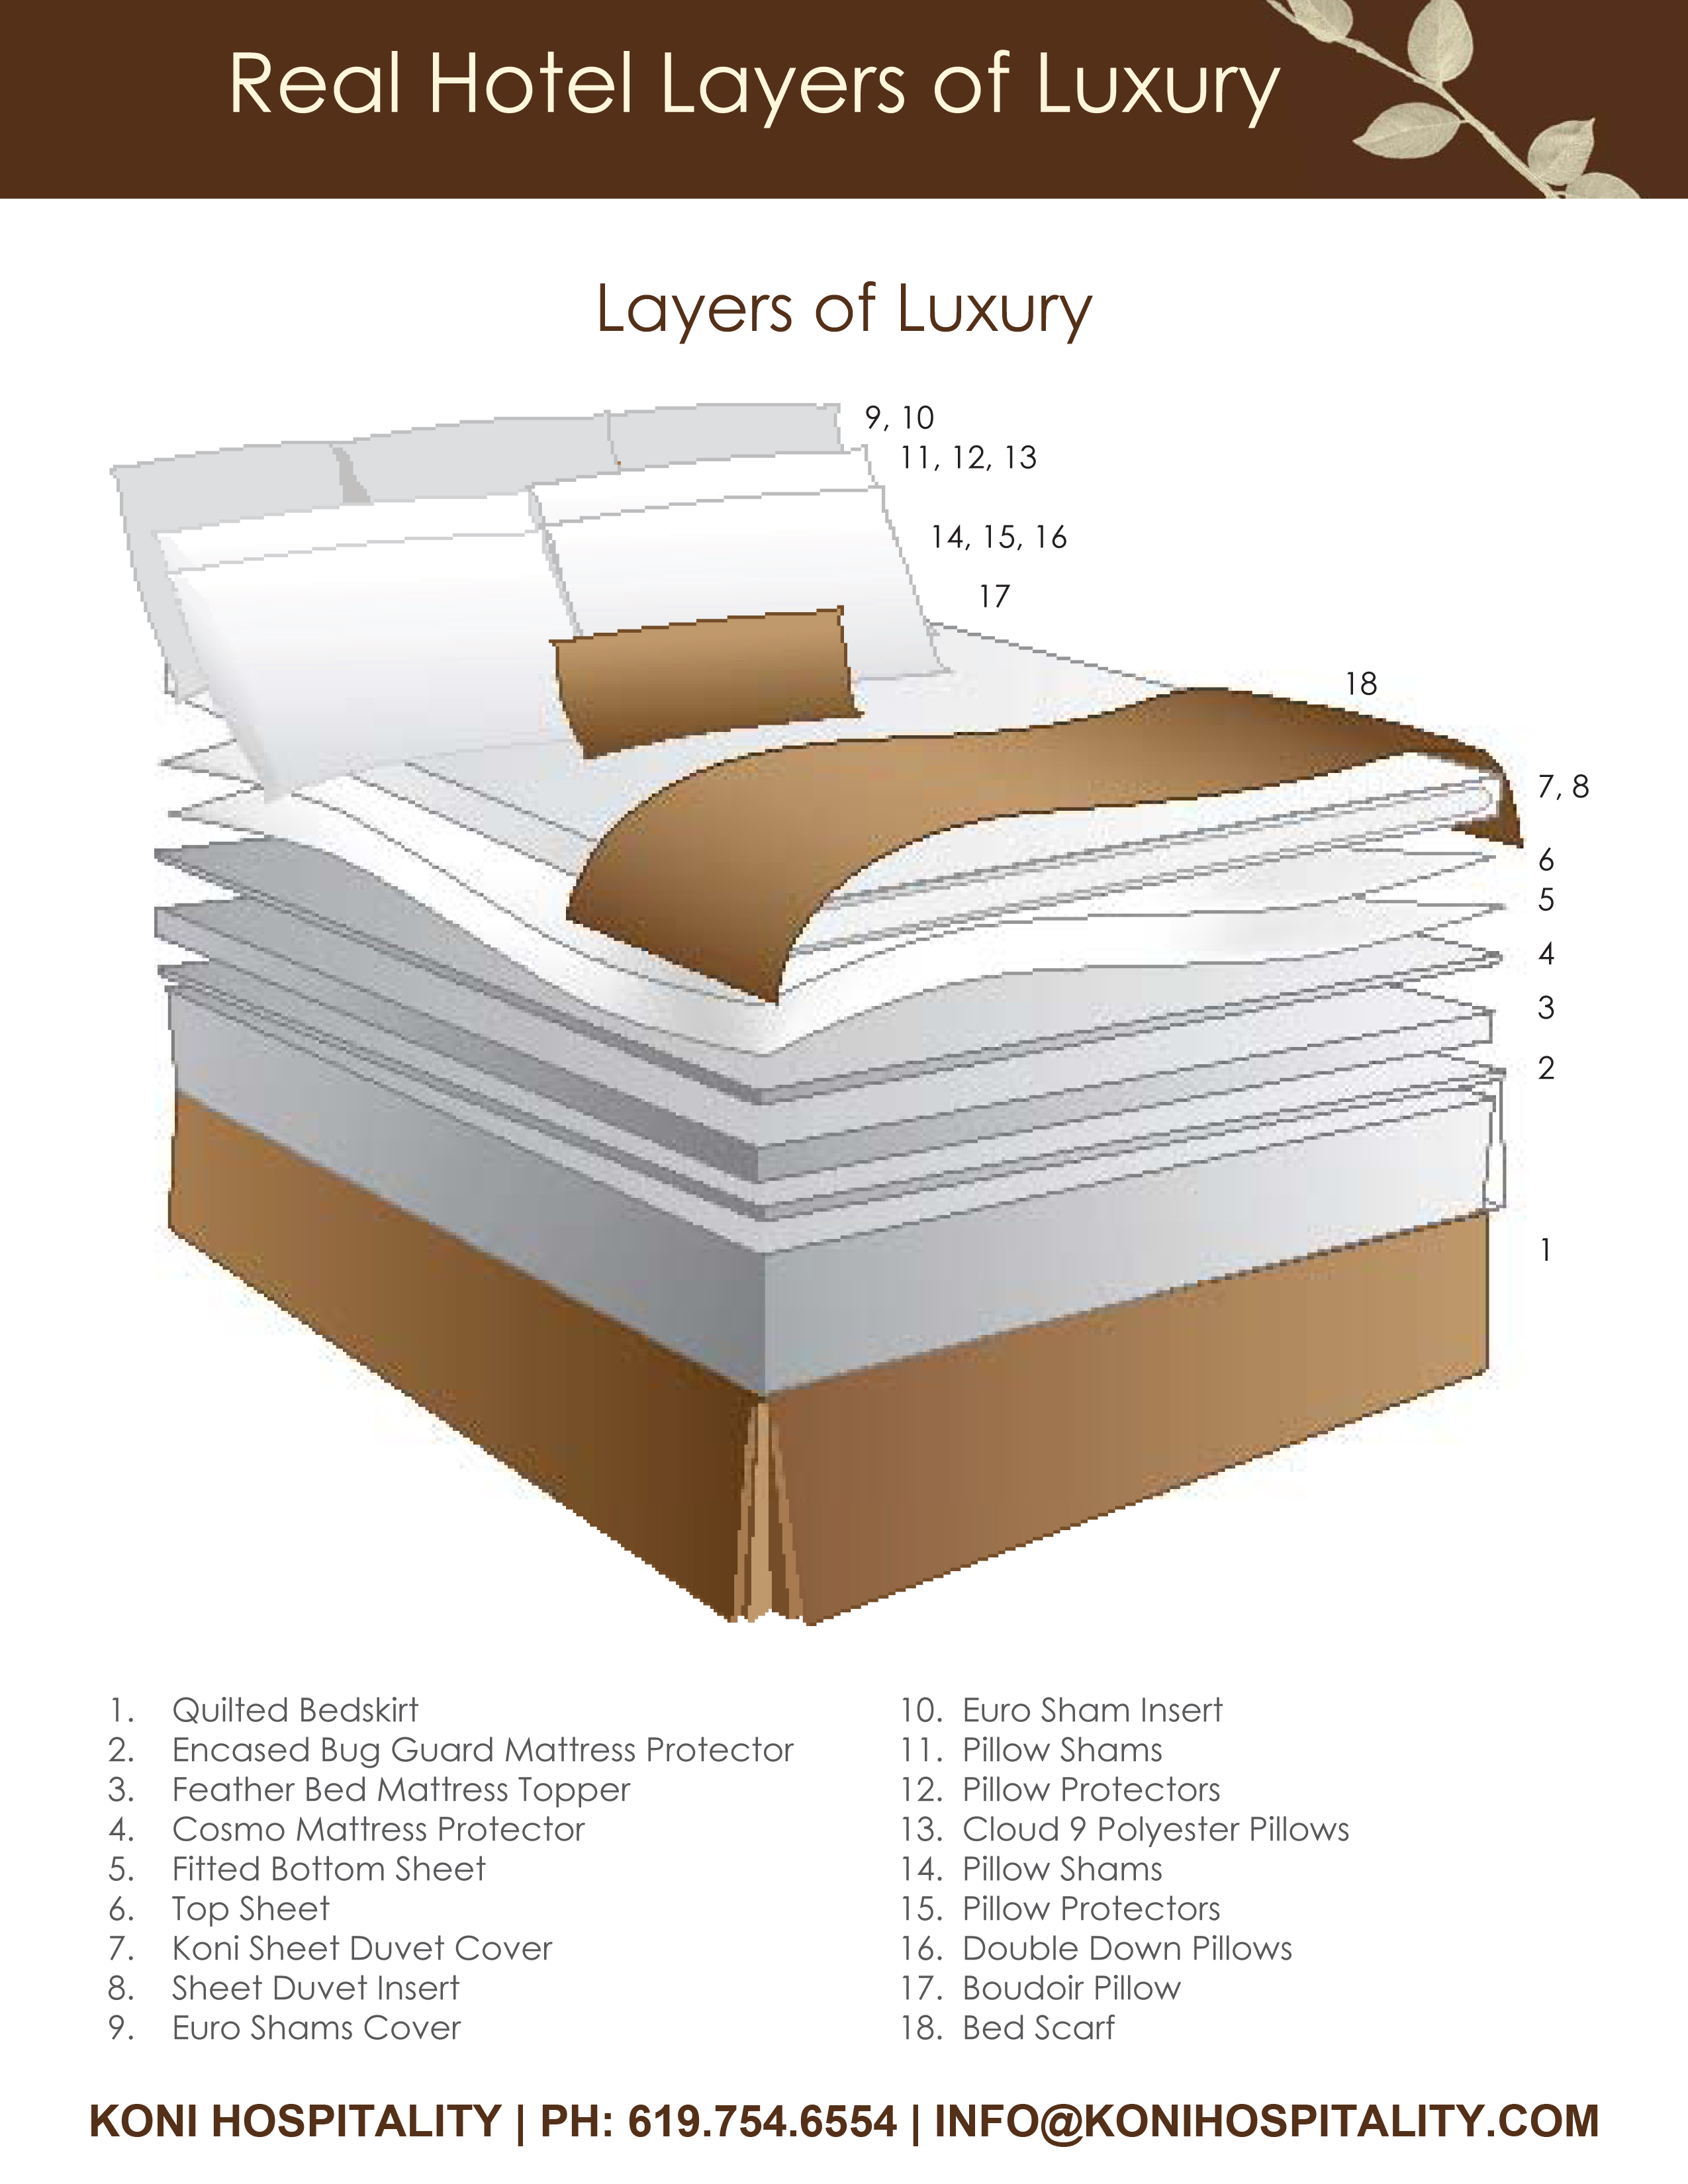 Drawn bedroom mattress Hotel what luxurious of bed